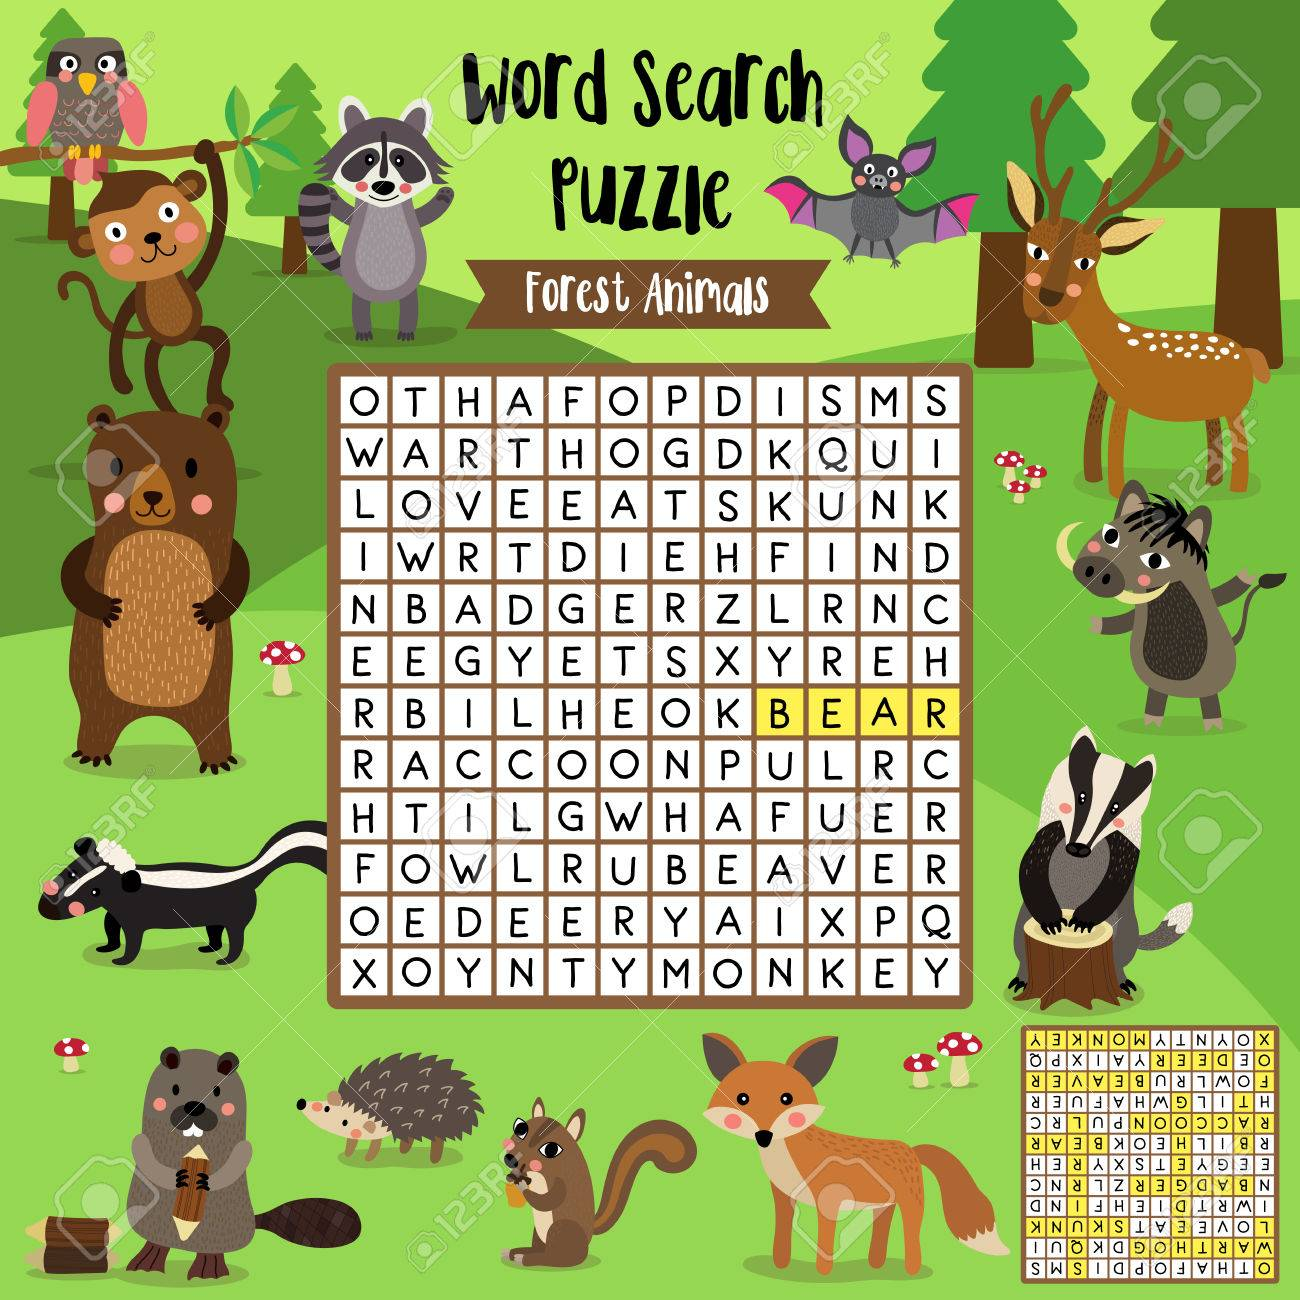 Printable Pictures Of Forest Animals - Best Animals 2018